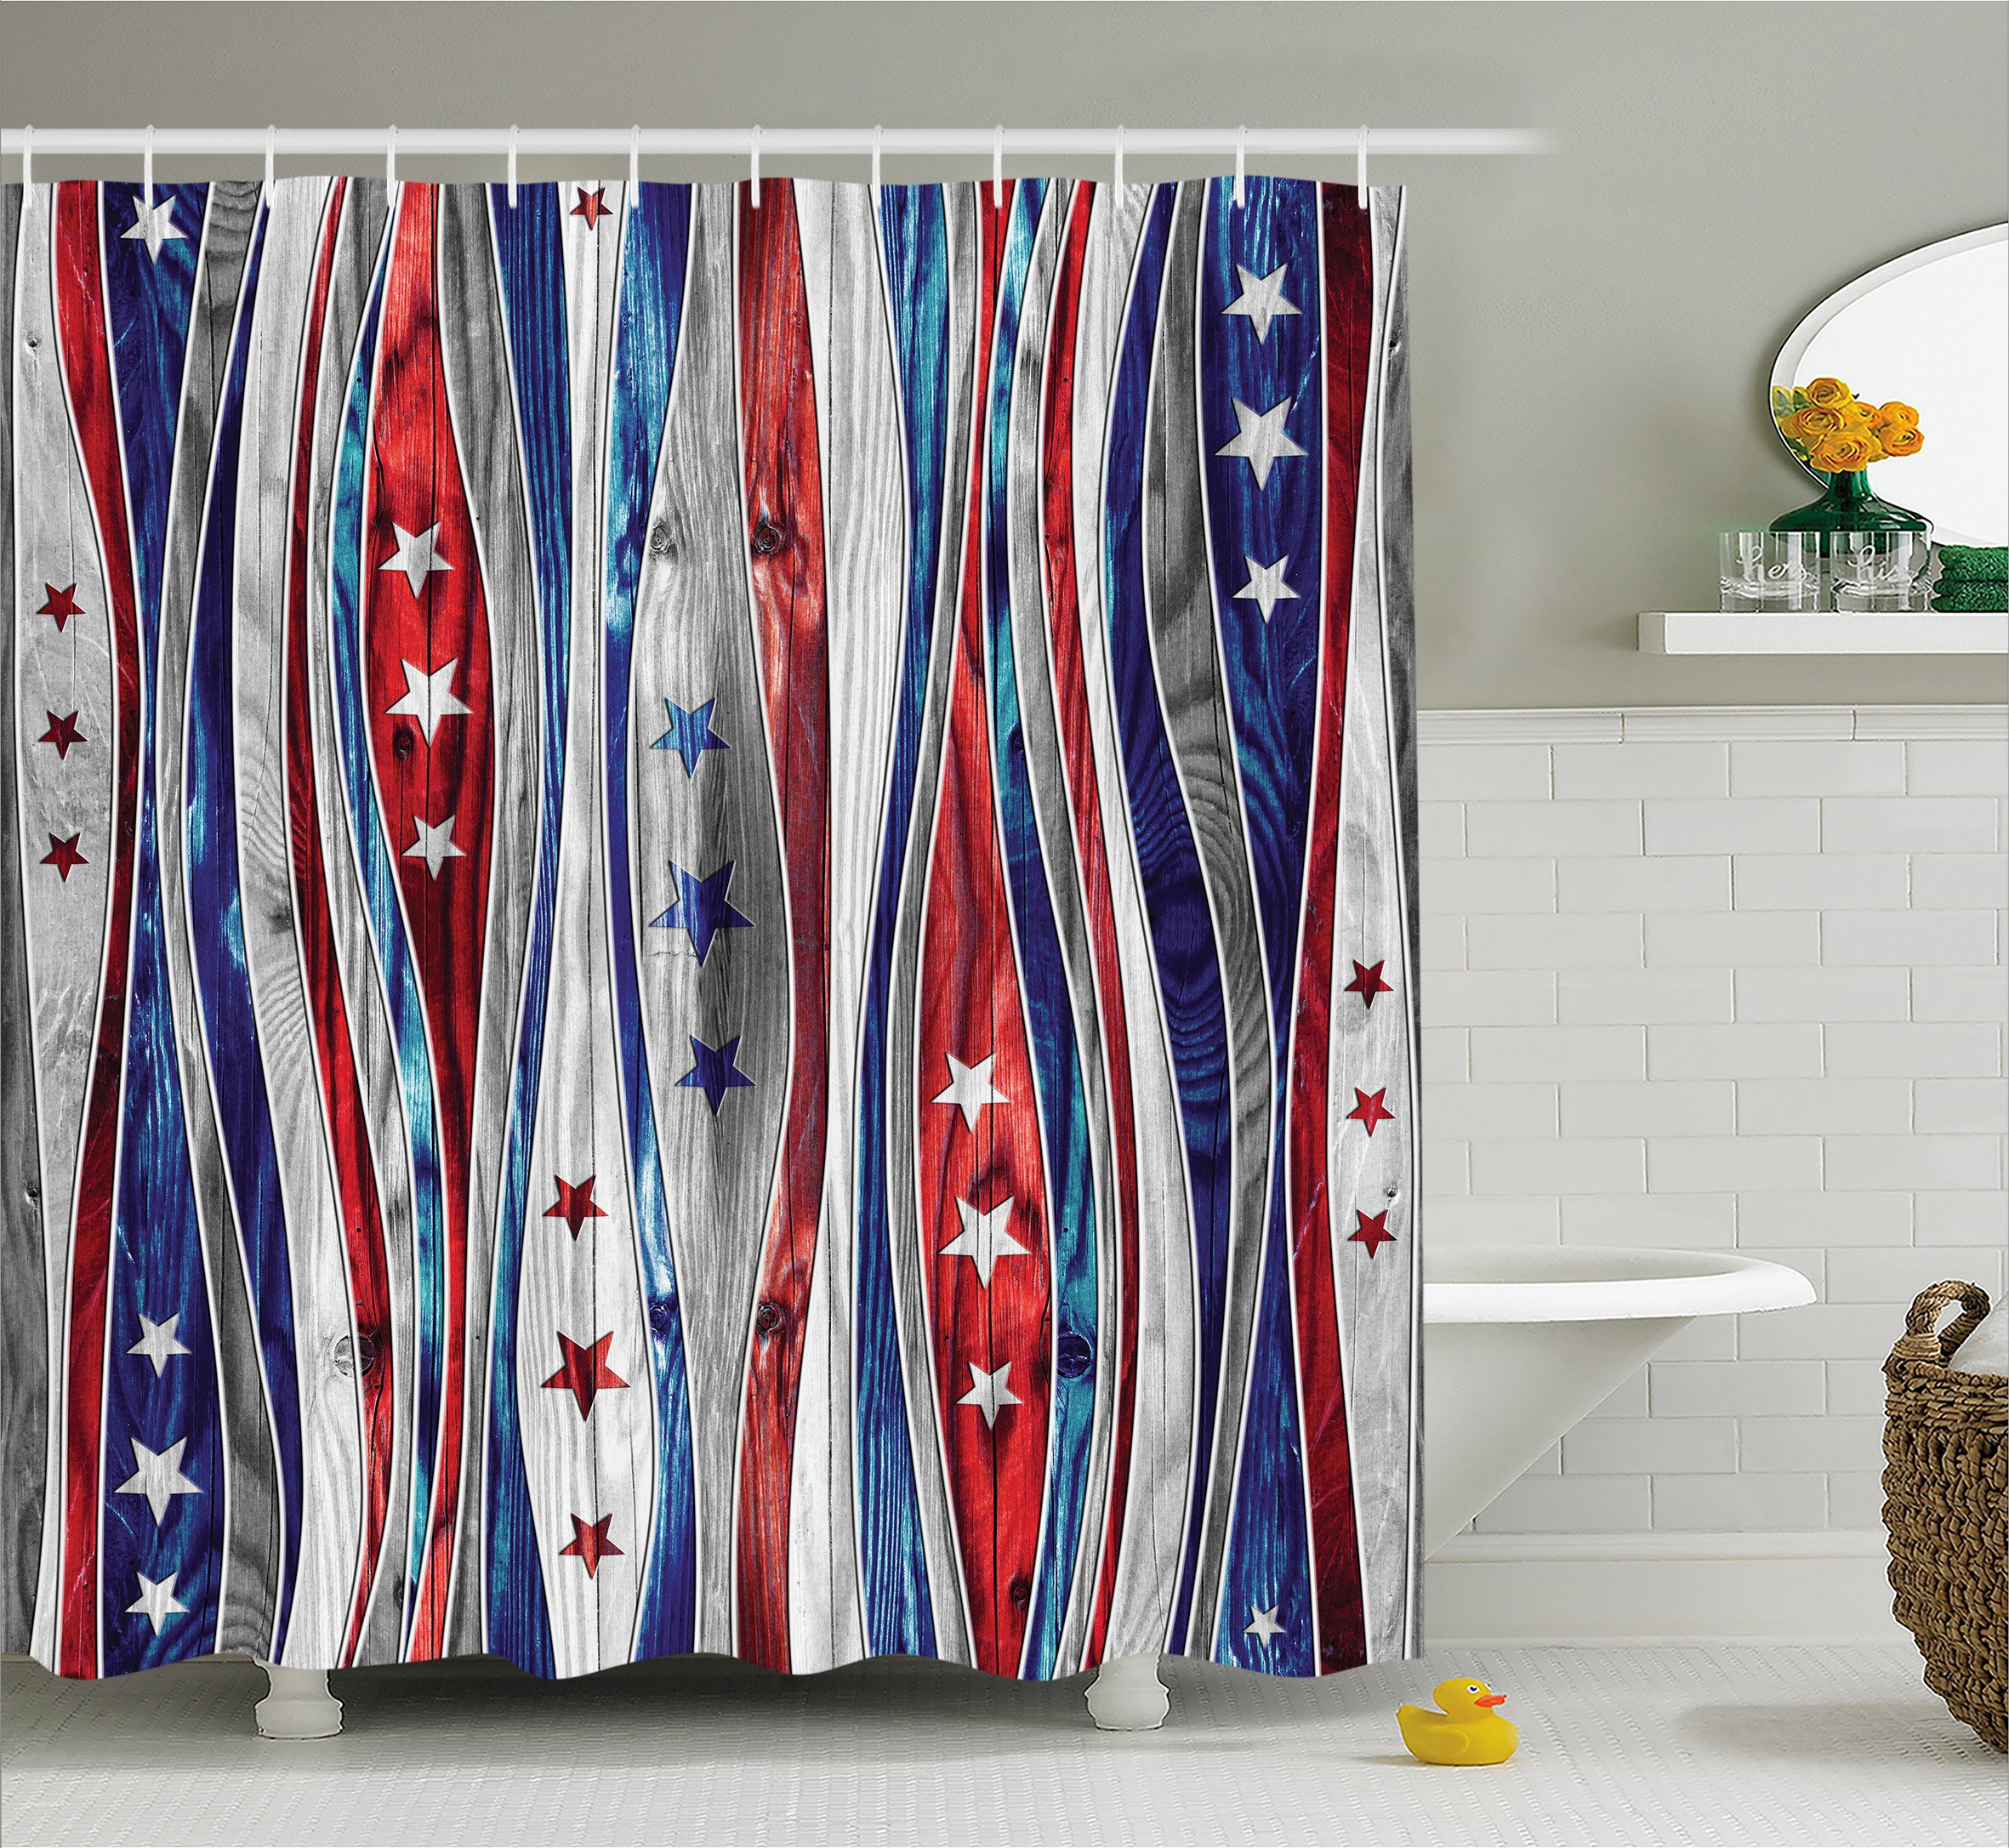 Rustic Home Decor Shower Curtain by Ambesonne, Digital American Flag Colored Wood Stripes with Ornate Star Figures Image, Fabric Bathroom Decor Set with Hooks, 75 Inches Long, Red Blue